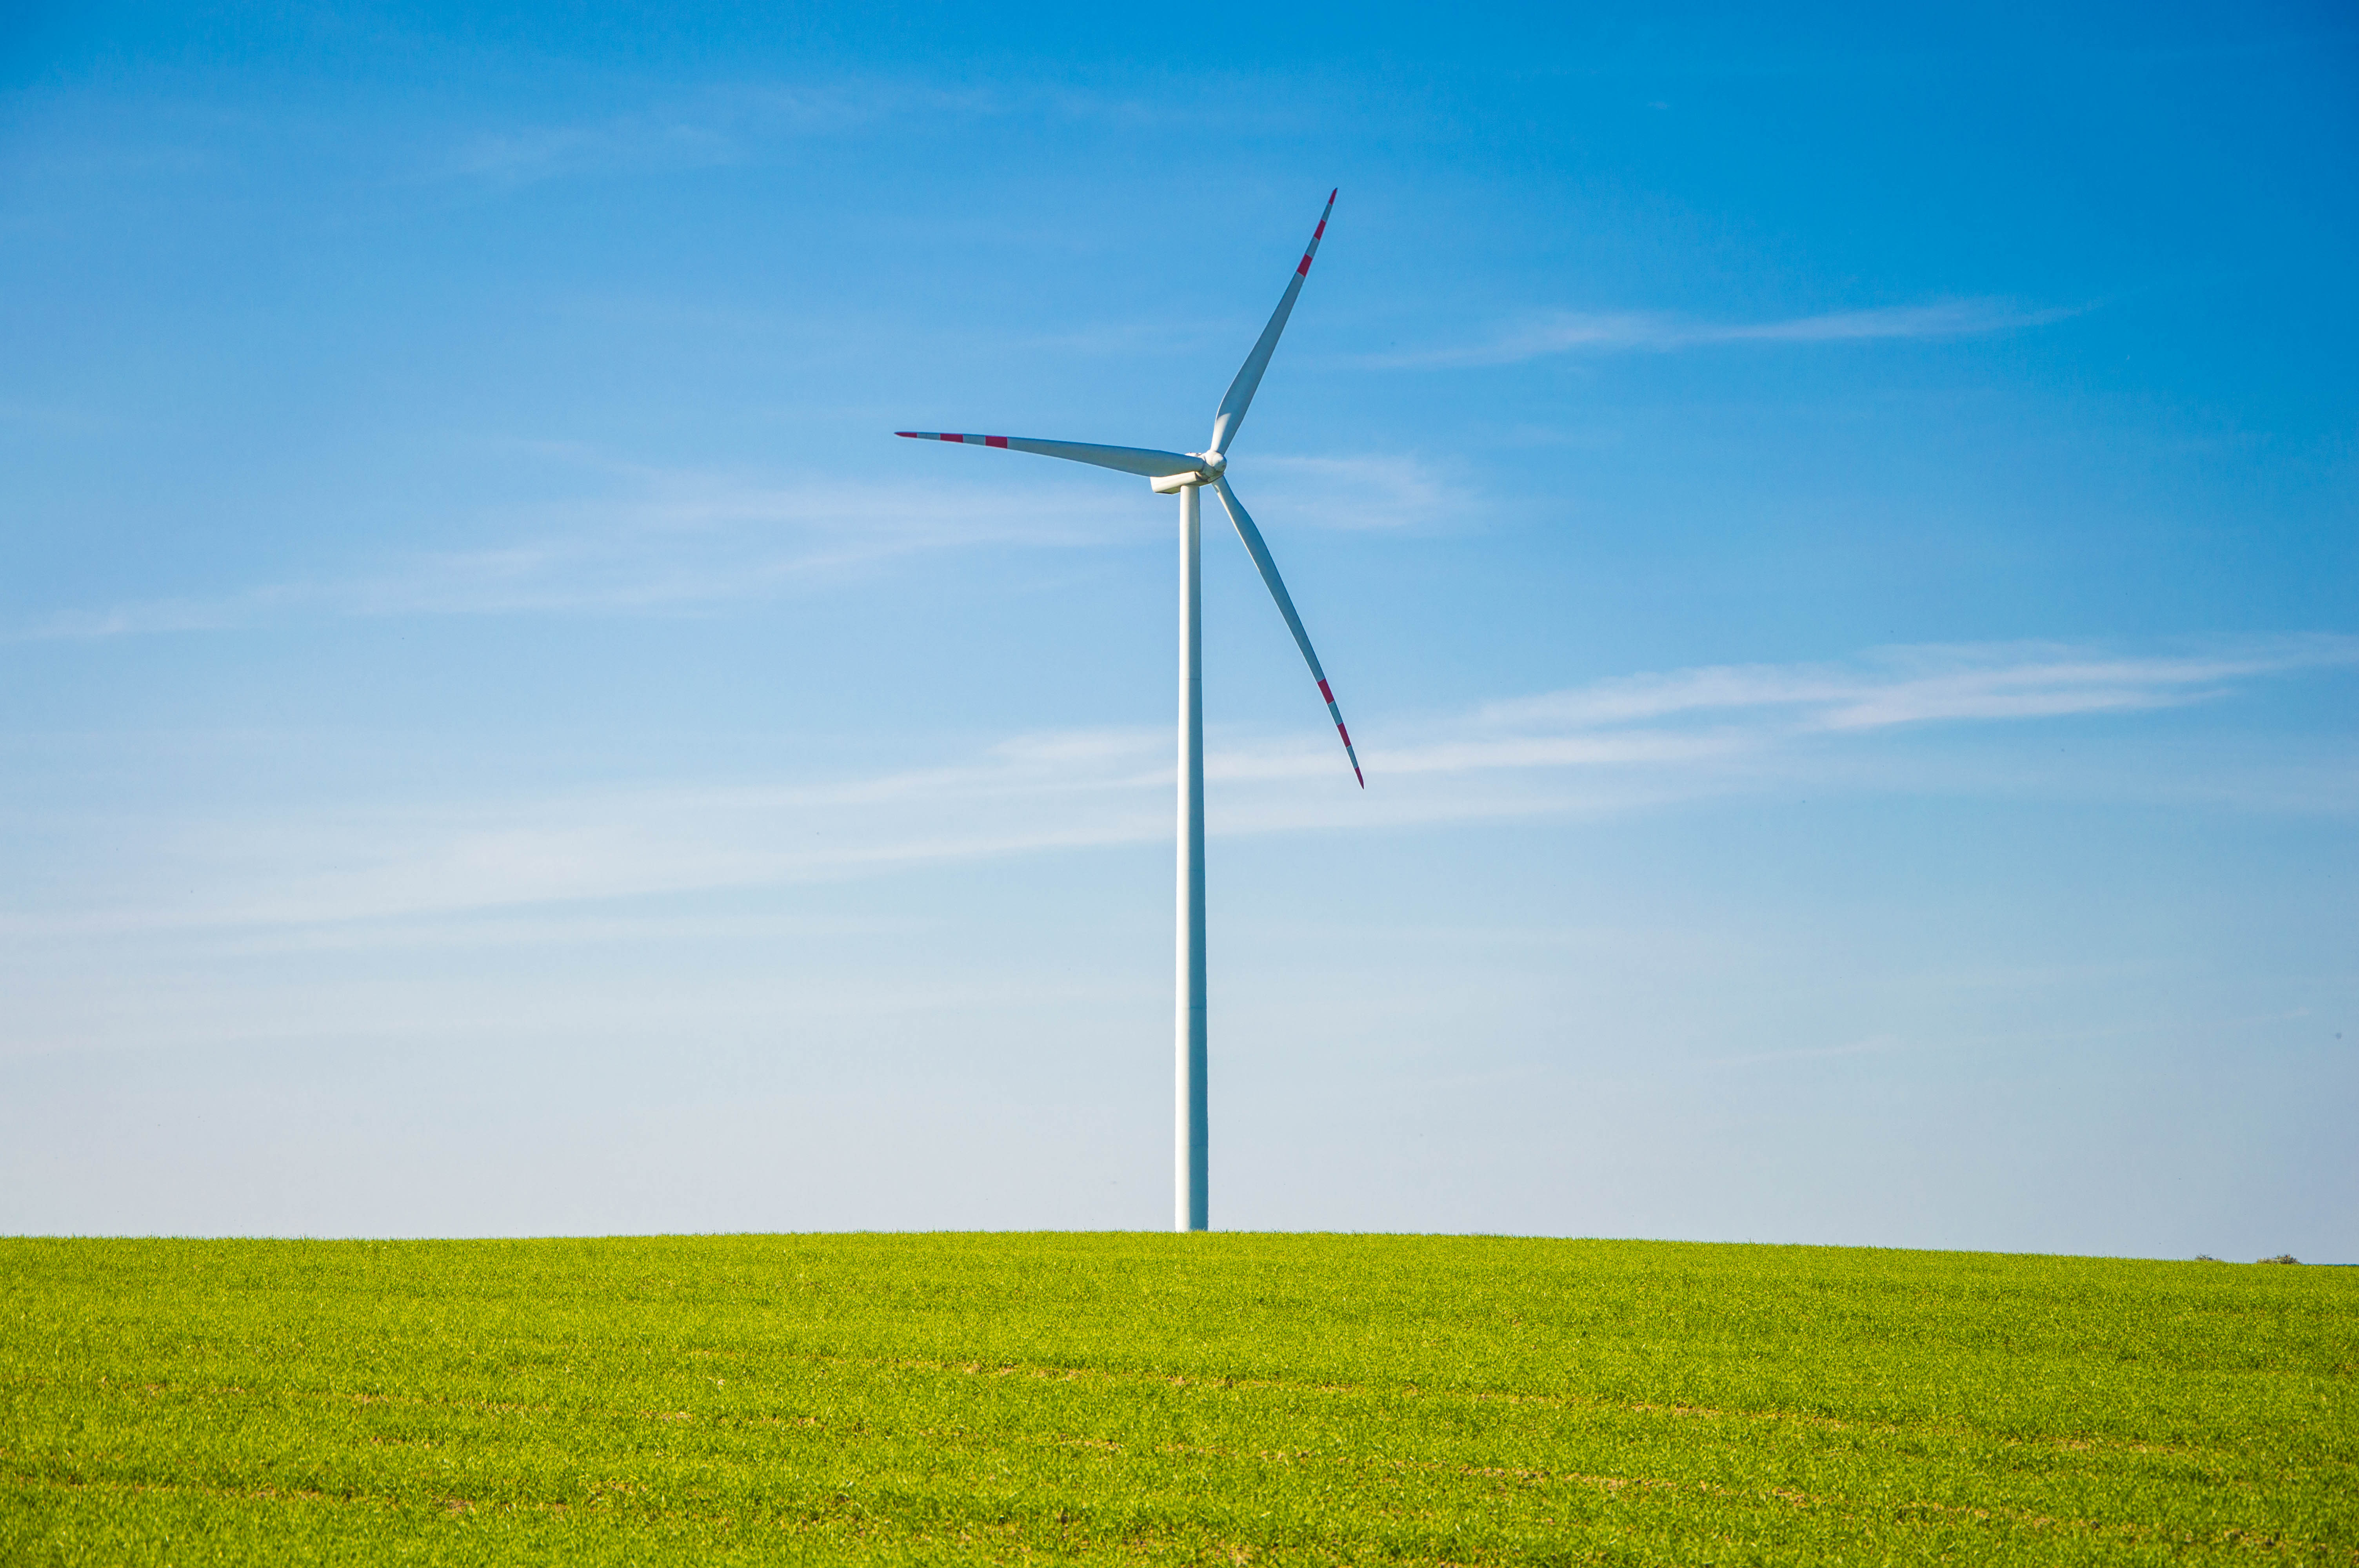 Hundreds of wind turbines in the Netherlands are recognized as unprofitable